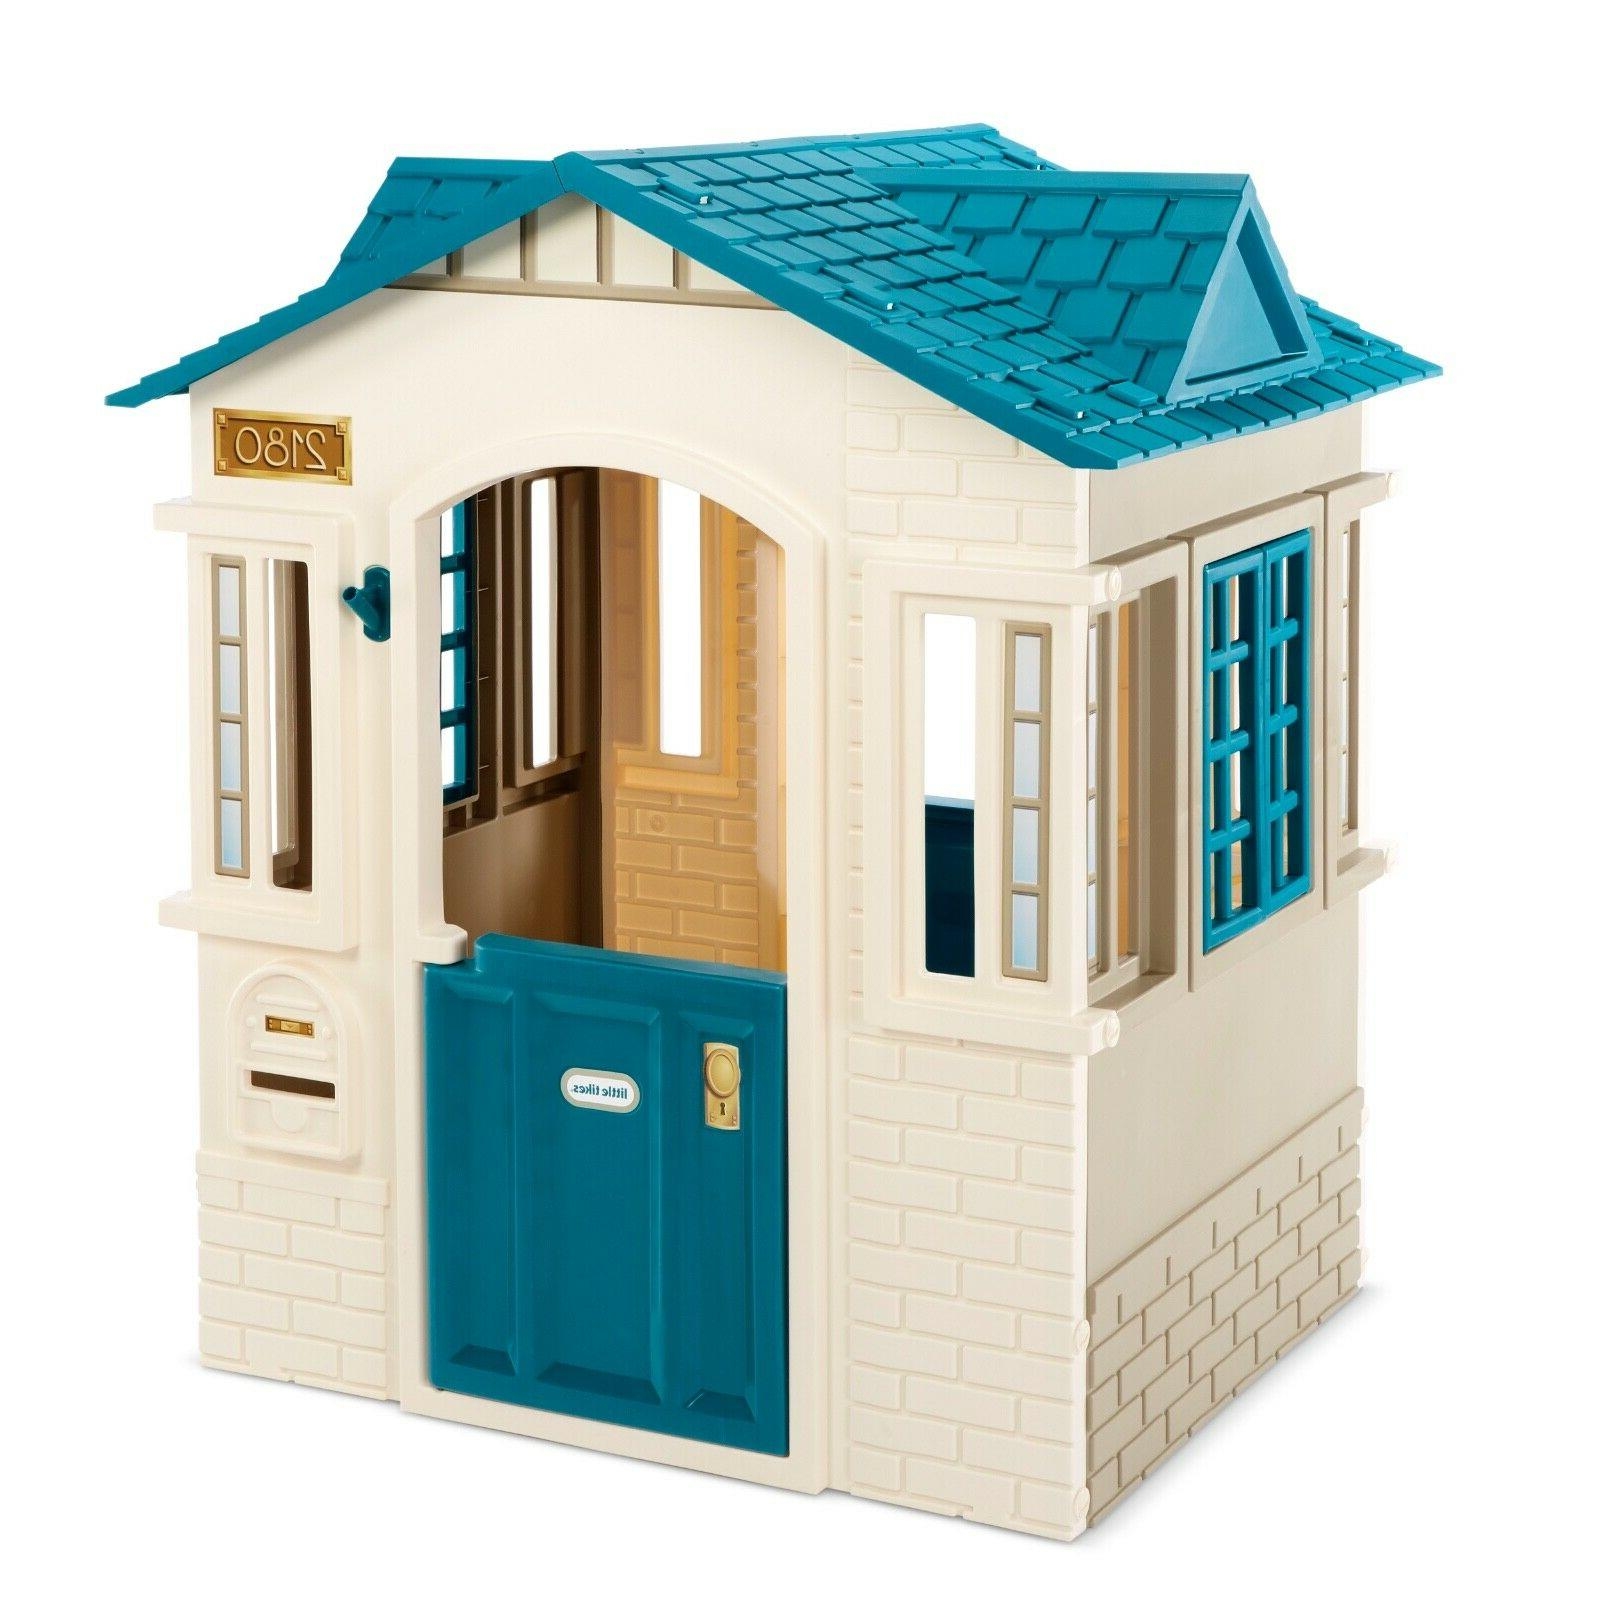 Cope Cottage Playhouse Outdoor House Plastic New